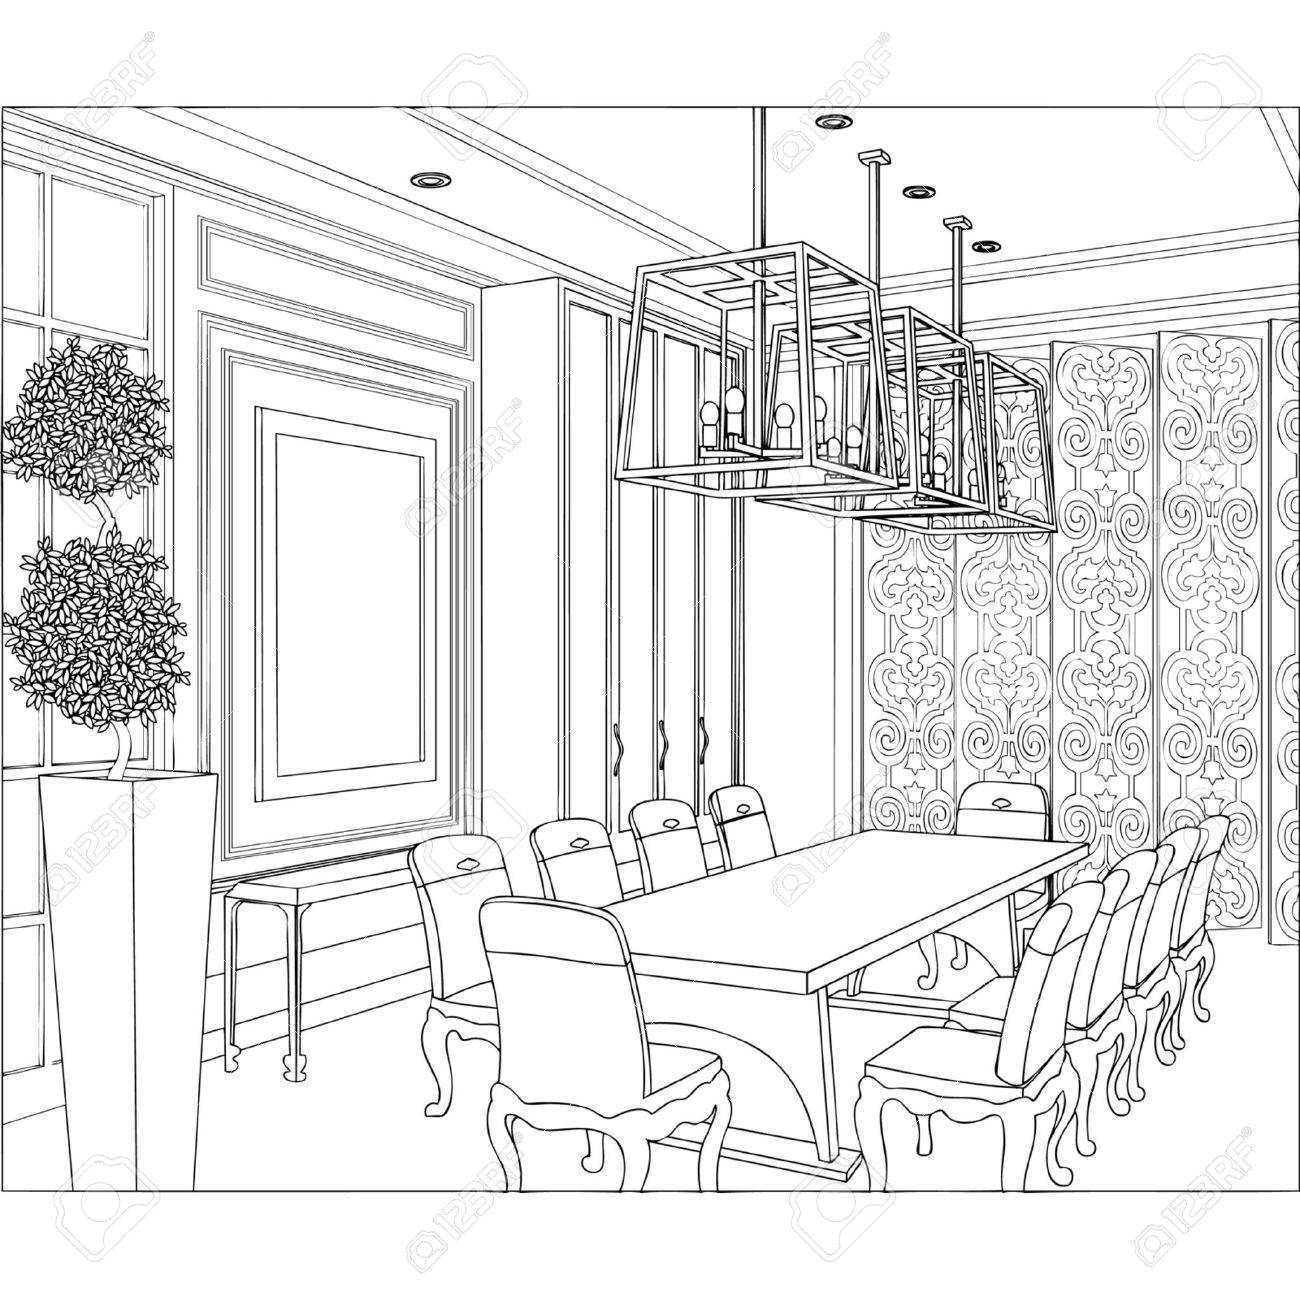 1300x1300 Editable Vector Illustration Of An Outline Sketch Of A Interior 3d